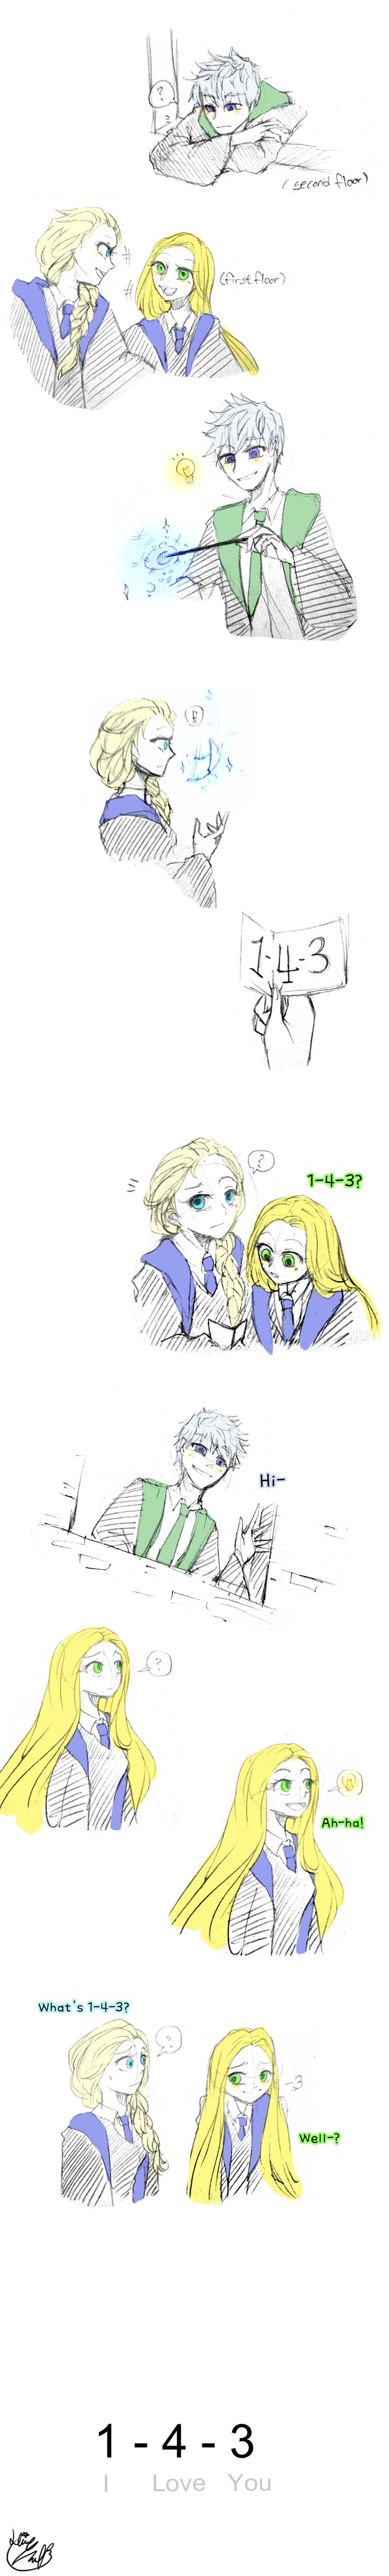 1-4-3 by Lime-Hael on deviantART | Frozen's Elsa, Rise of the Guardians' Jack Frost, and Tangled's Rapunzel | J.K. Rowling's Harry Potter